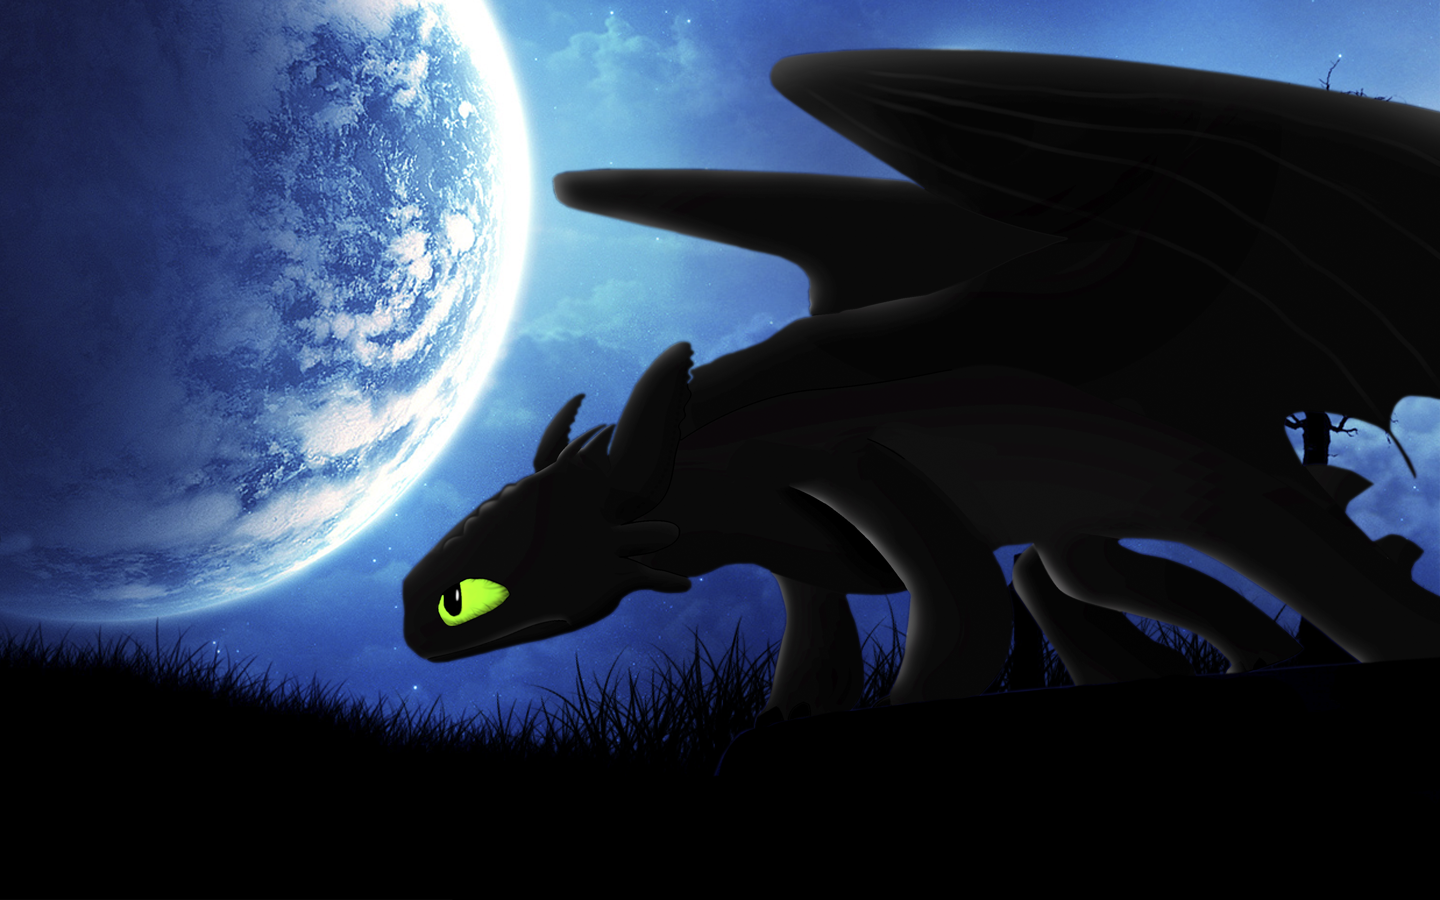 Toothless Dragon Wallpaper Images Pictures   Becuo 1440x900